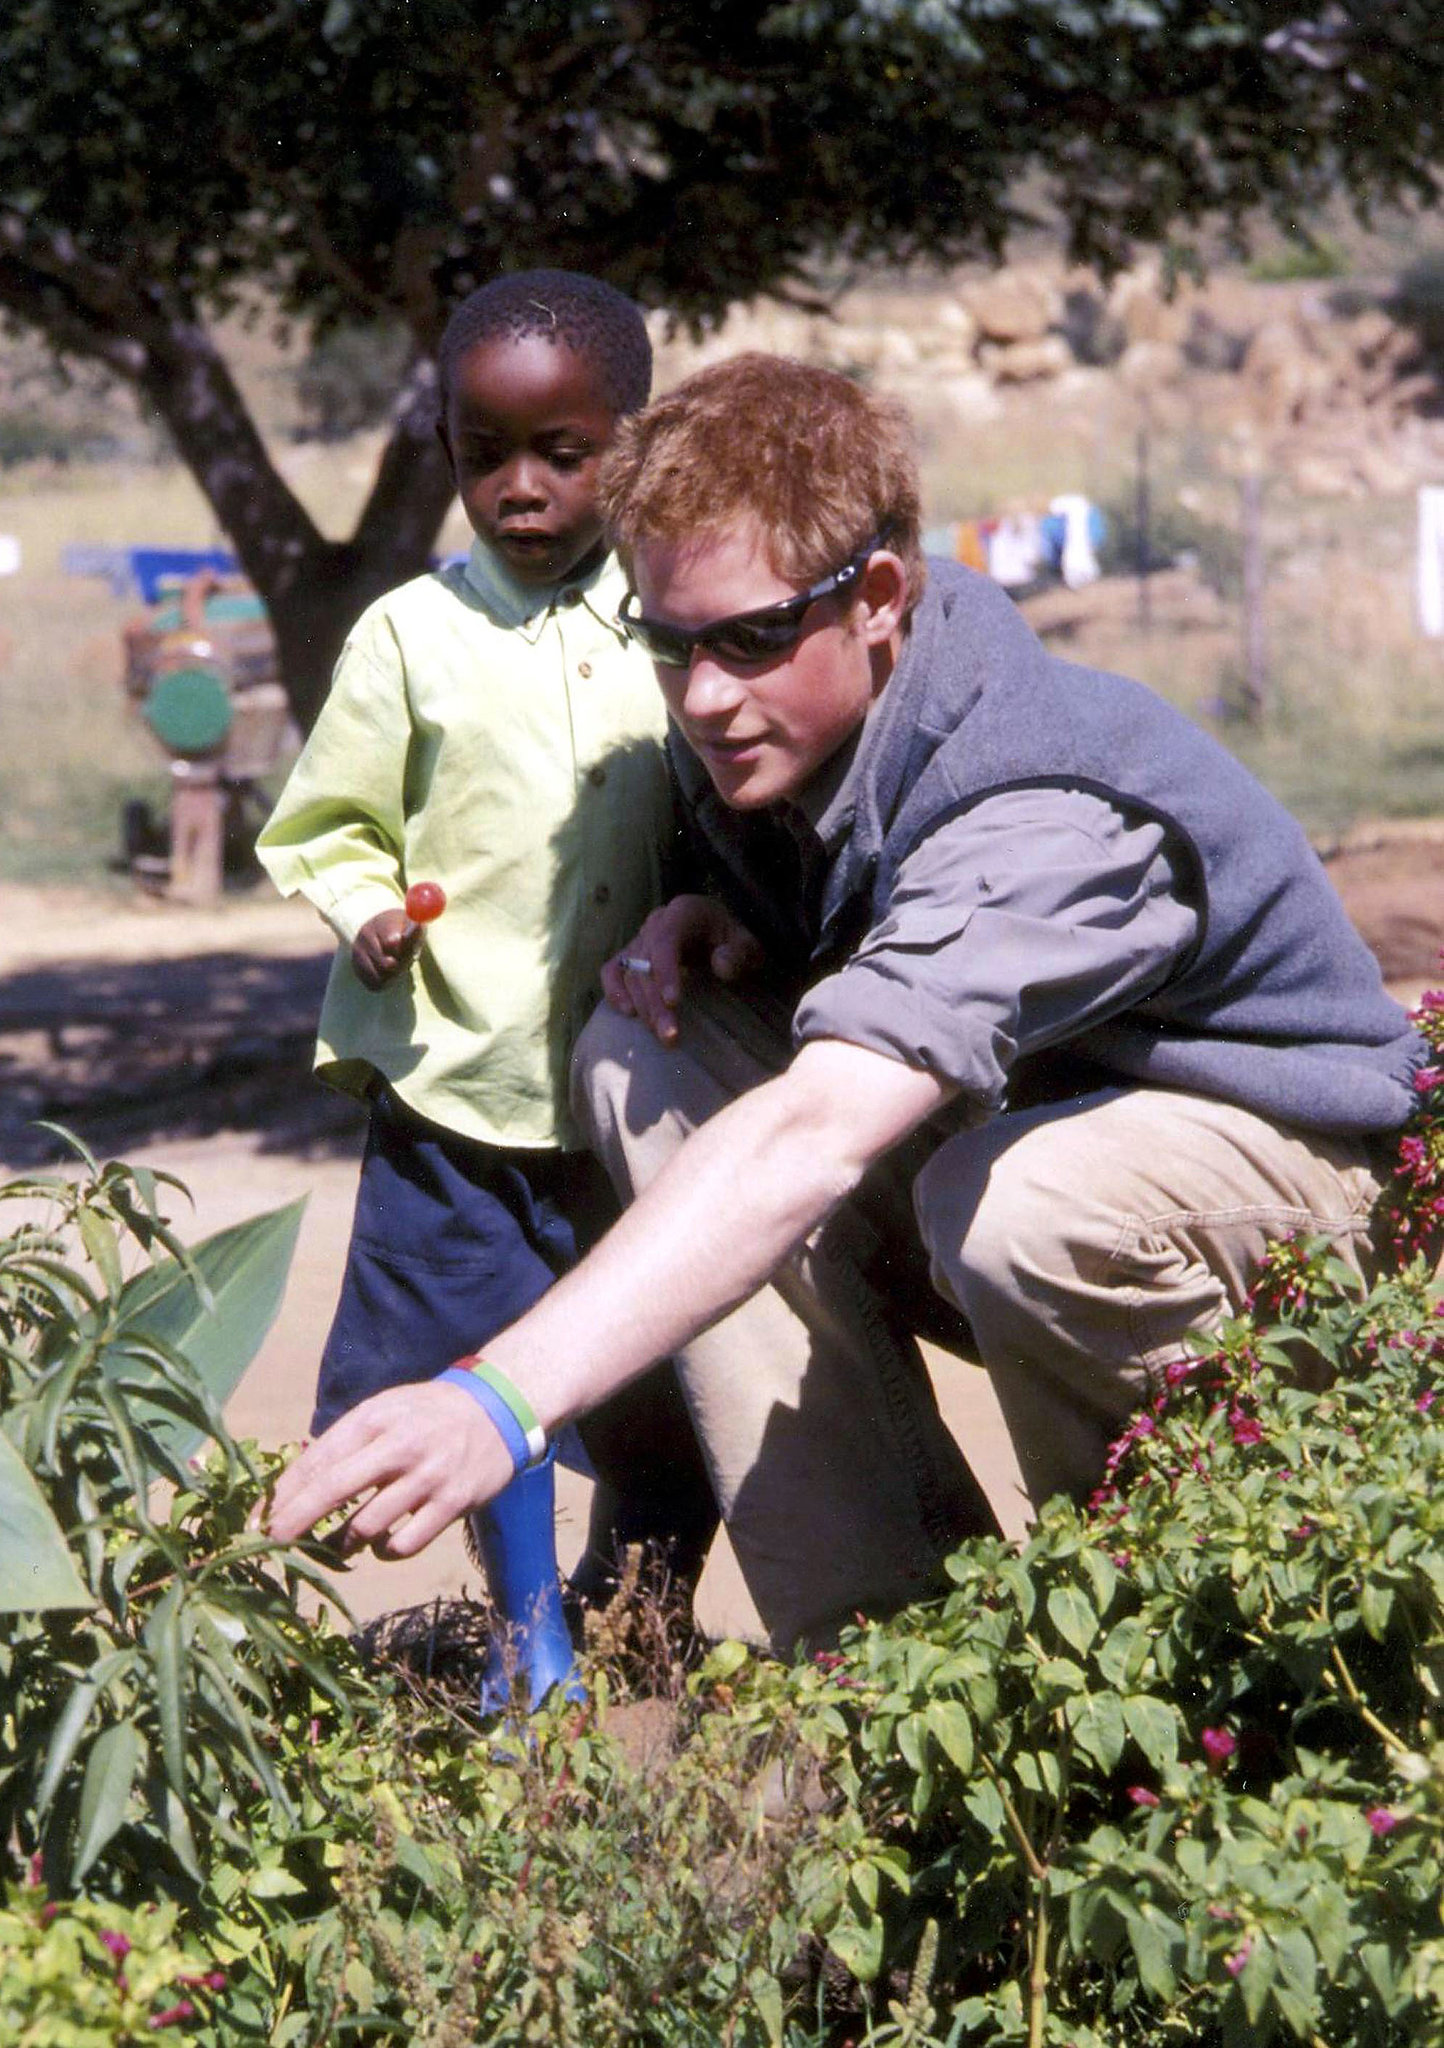 Prince Harry traveled to Lesotho for charity in 2005.